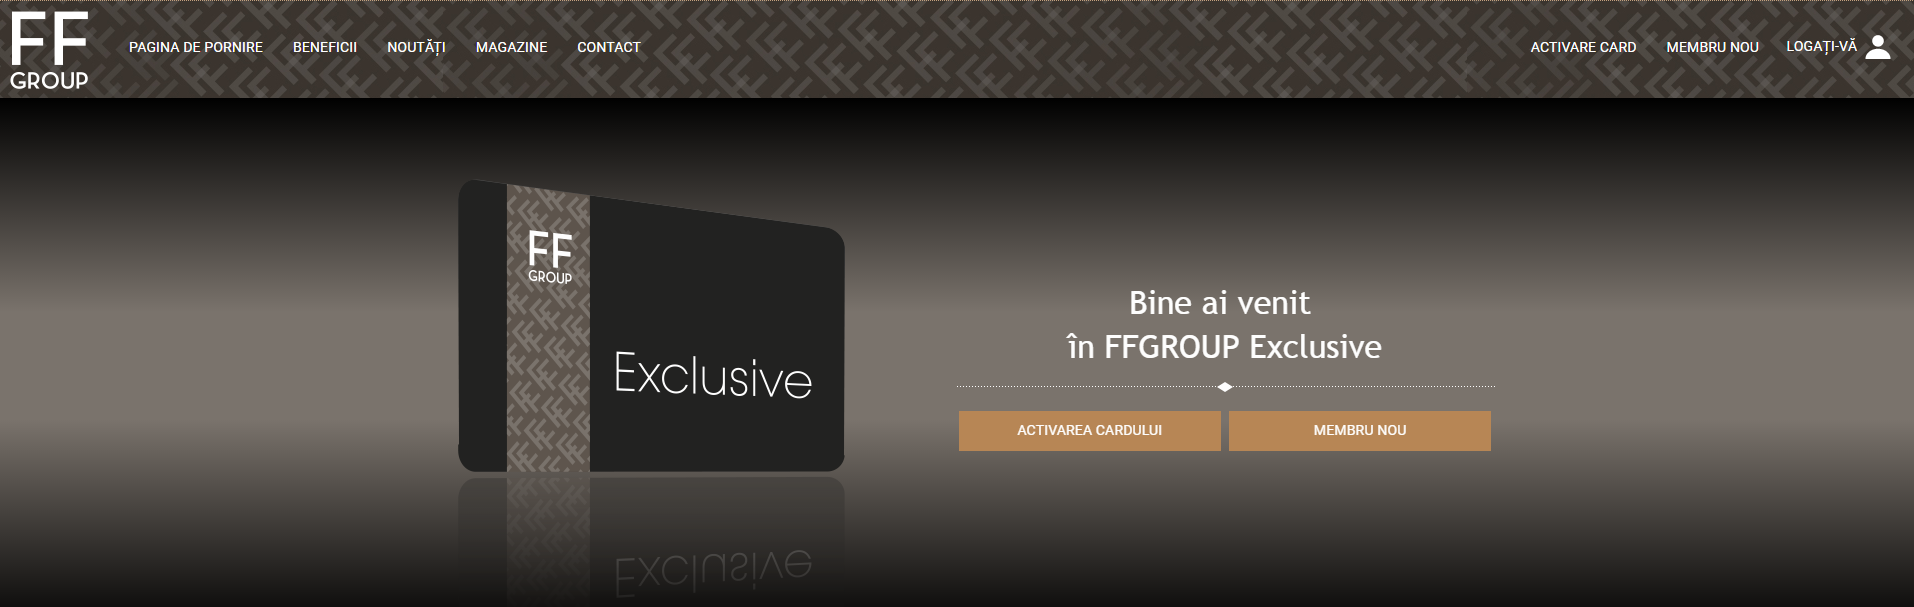 FFGROUP Exclusive customer loyalty program by QIVOS